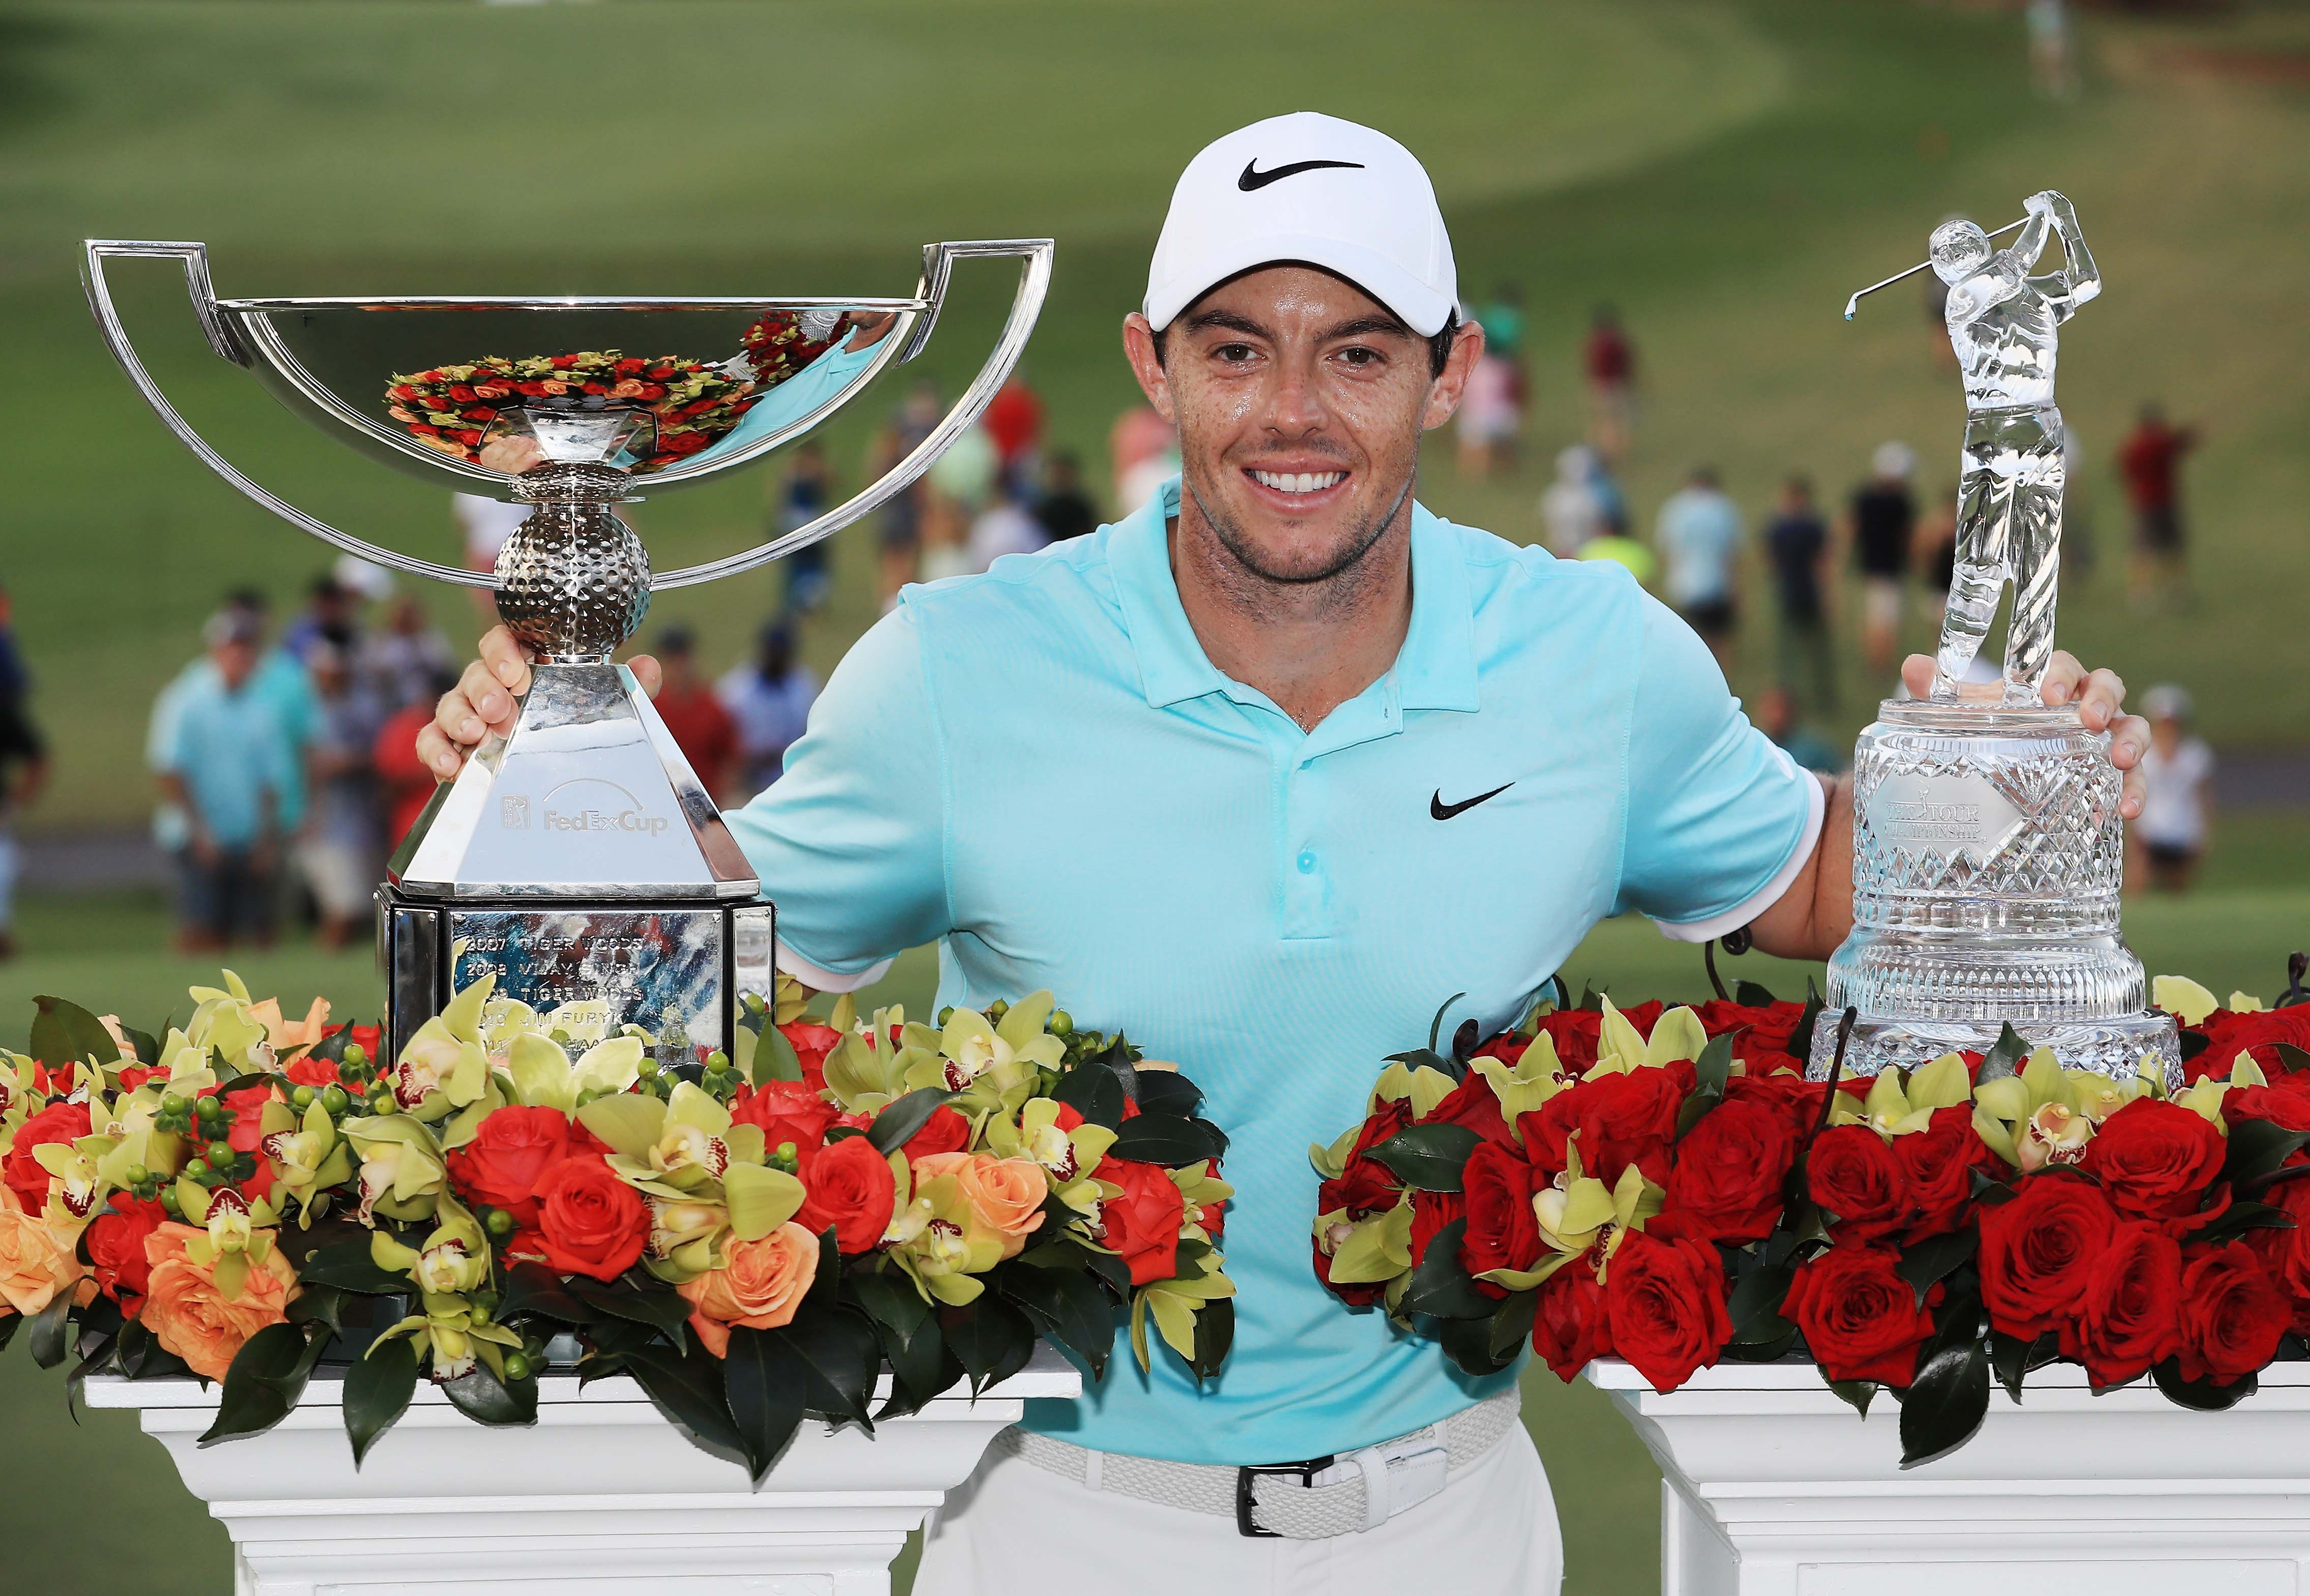 2016 FedExCup Champion: Rory McIlroy